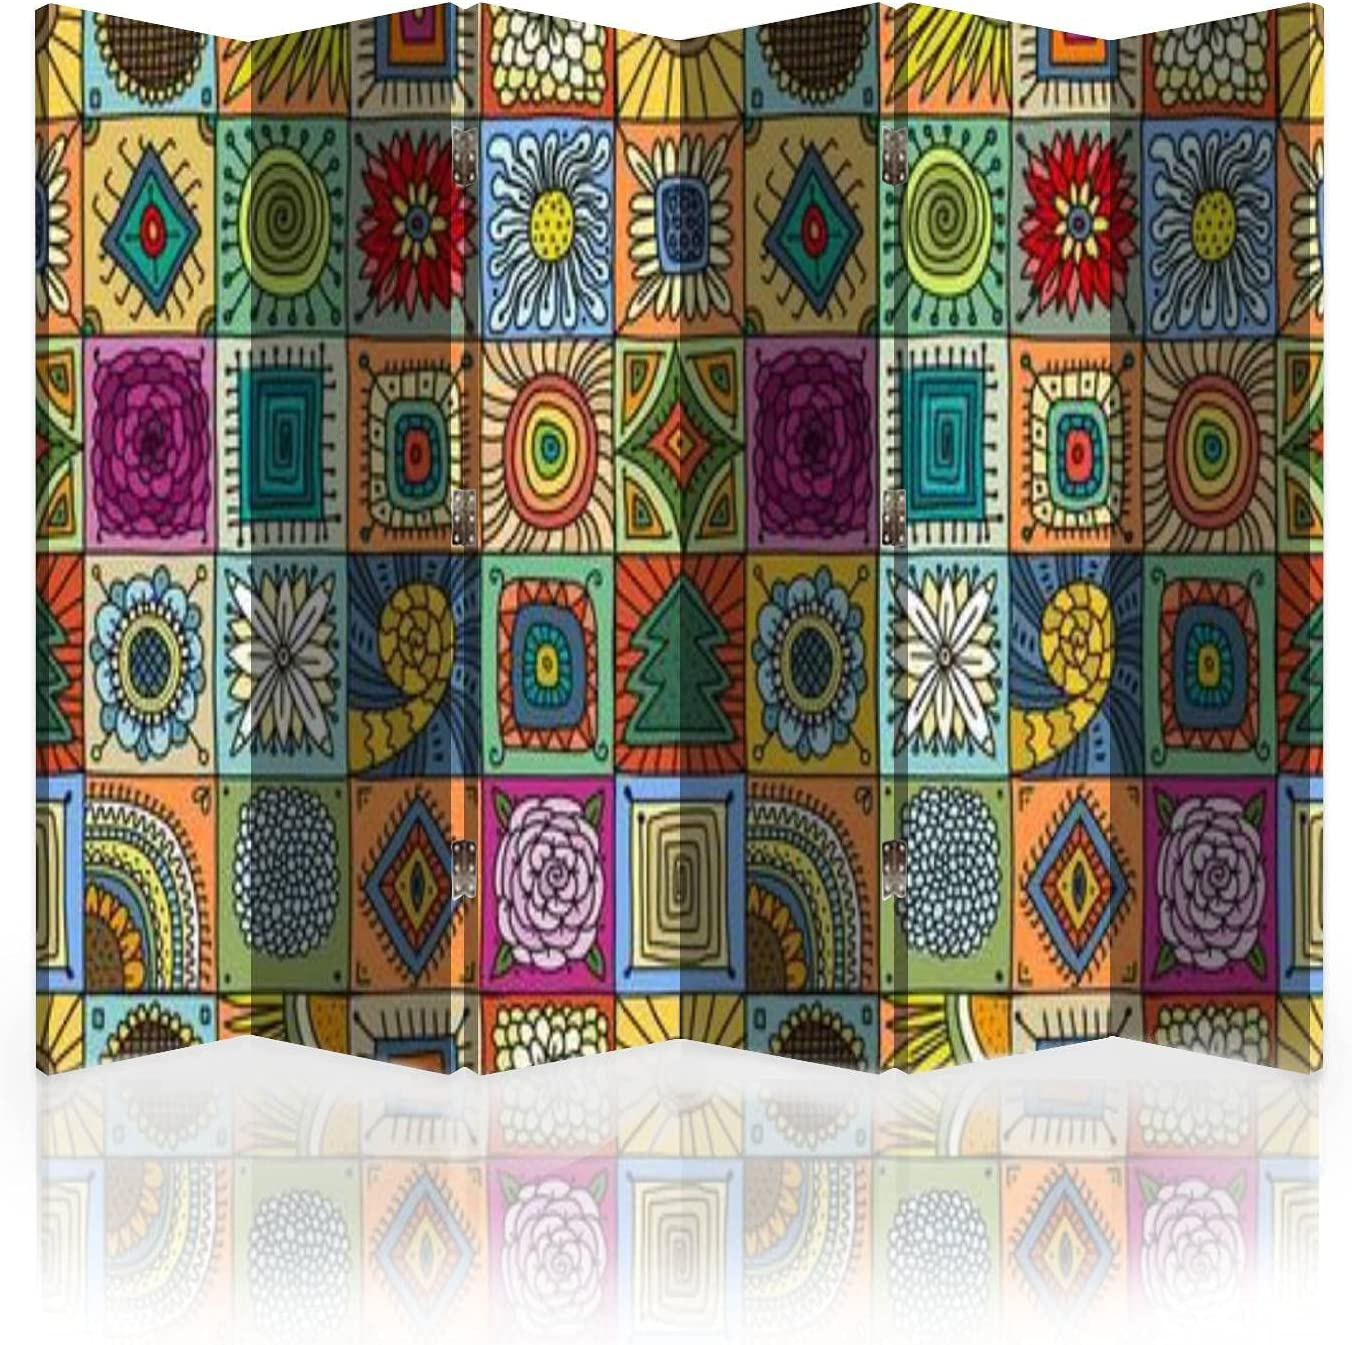 Canvas Room Divider Screen Talavera Pattern Indian Patchwork Turkish Ornament Moroccan Tile Room Separator Folding Screen Privacy Partition Wall Dividers for Rooms 6 Panels